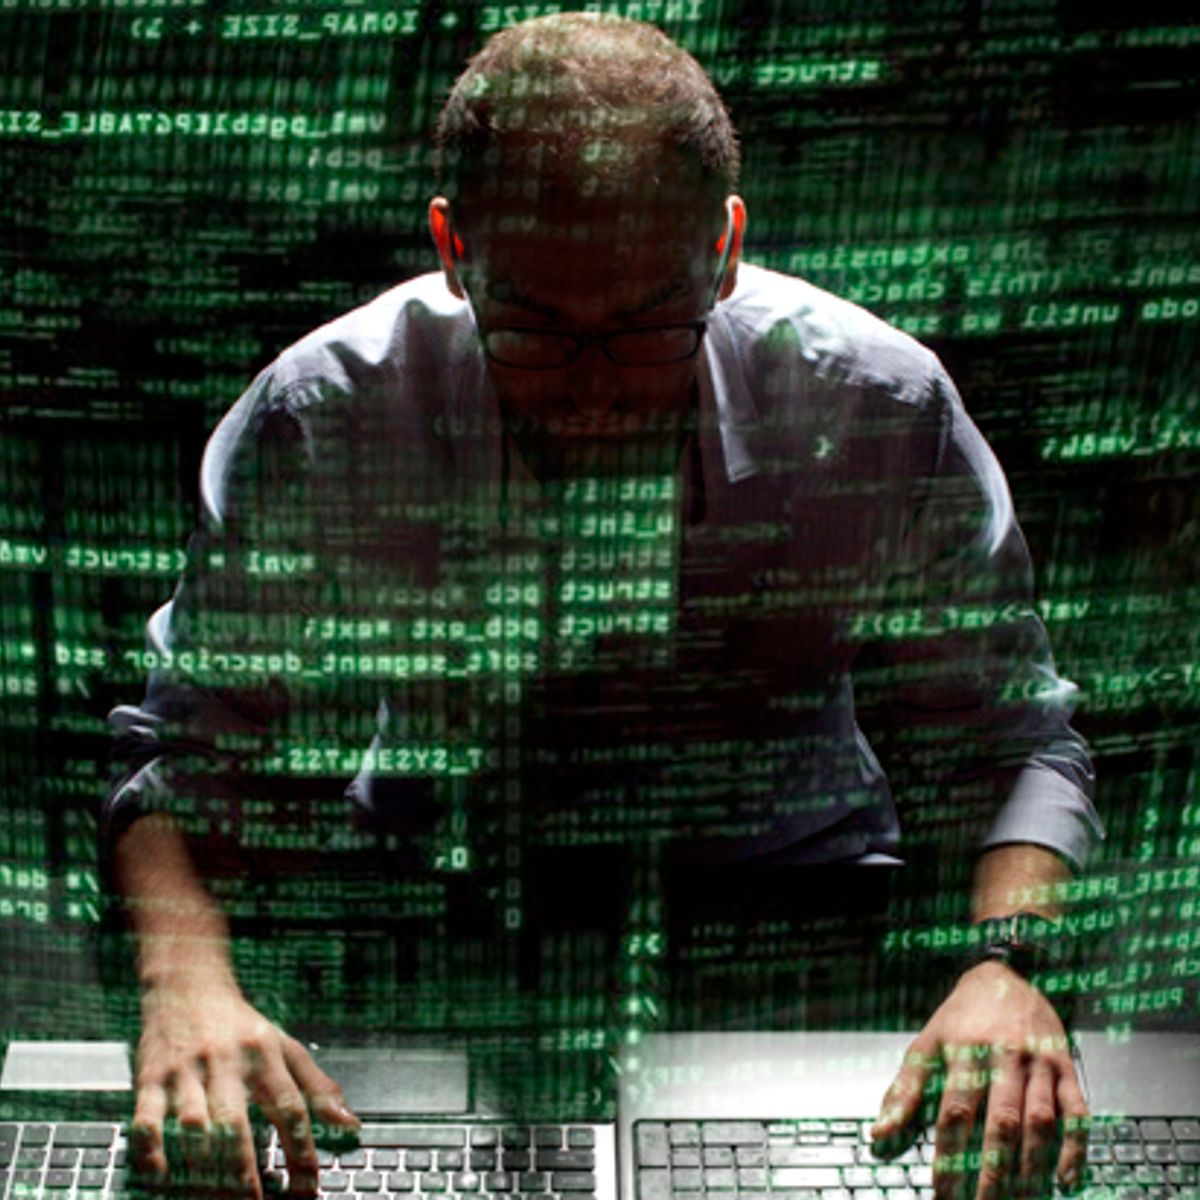 How the Russian government used disinformation and cyber warfare in 2016 election